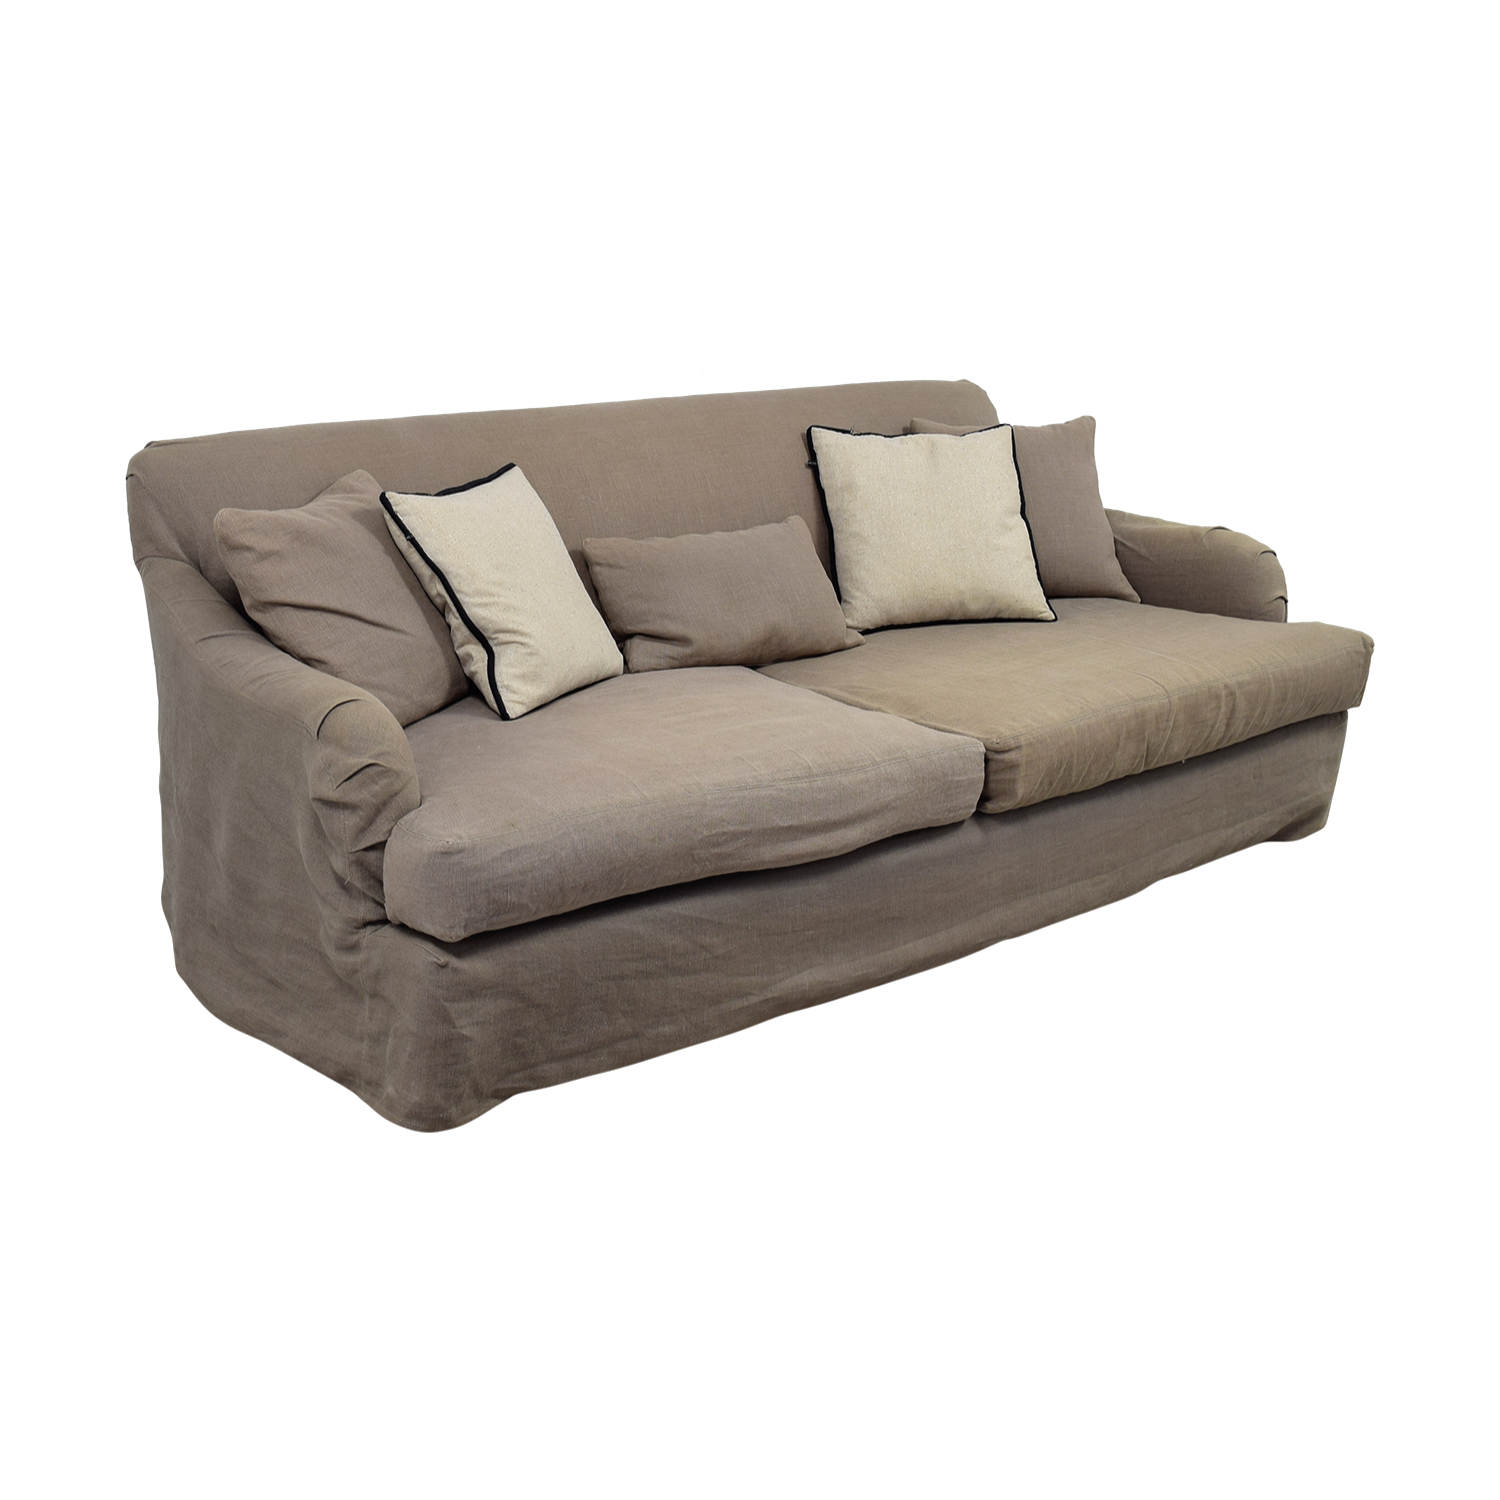 feather filled sofas second hand rattan garden sofa set covers 90 off cisco brothers grey linen down